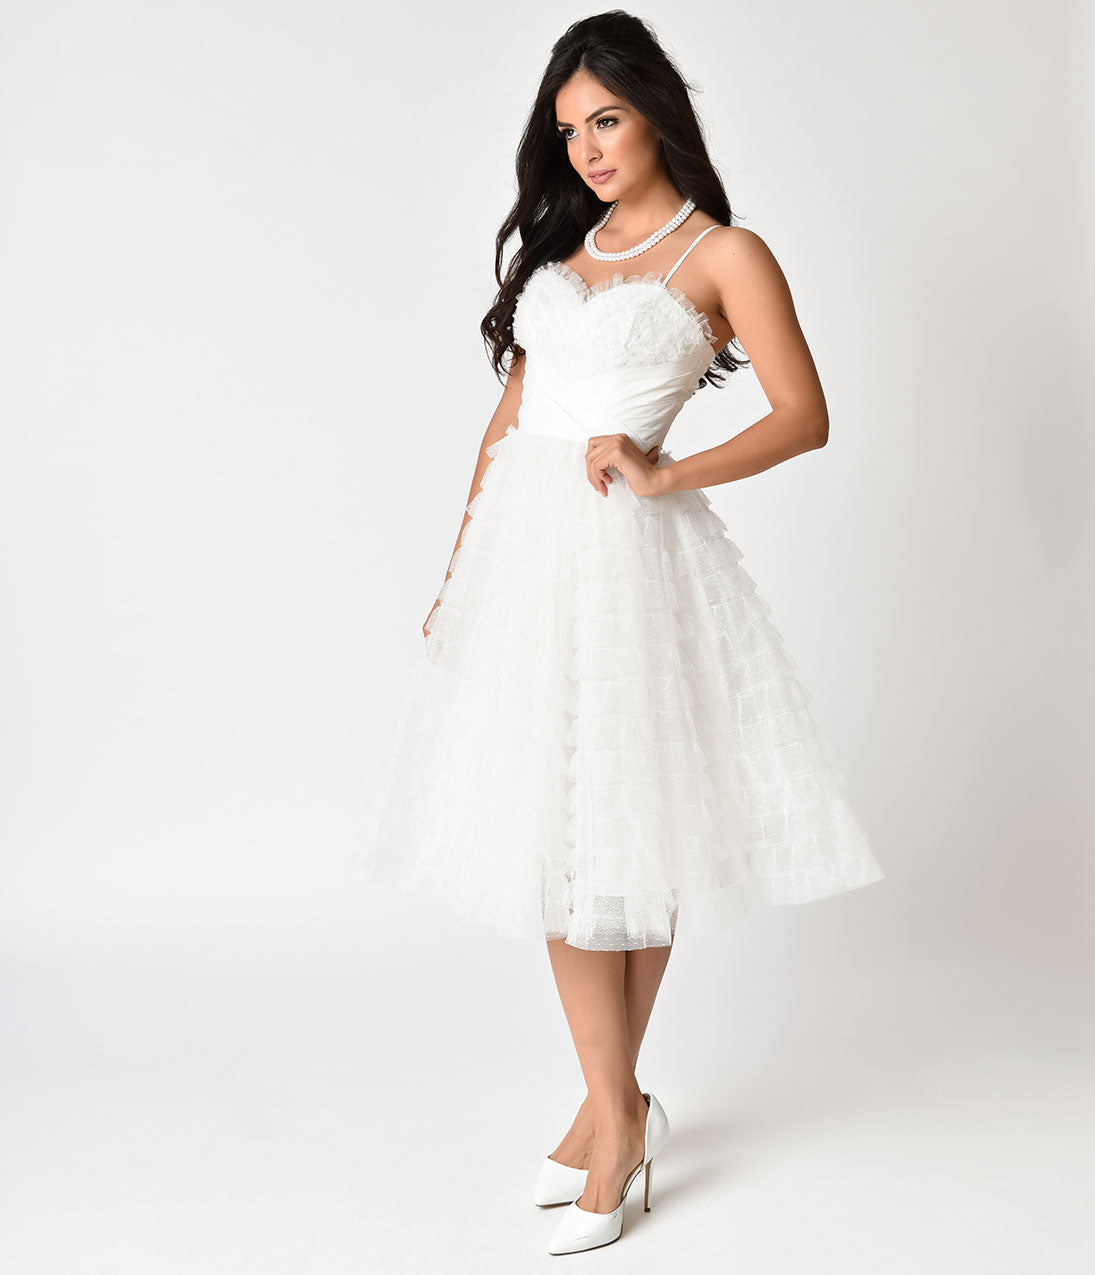 Vintage Inspired Wedding Dress | Vintage Style Wedding Dresses Unique Vintage 1950S White Ruffled Tulle Sweetheart Cupcake Swing Dress $89.00 AT vintagedancer.com